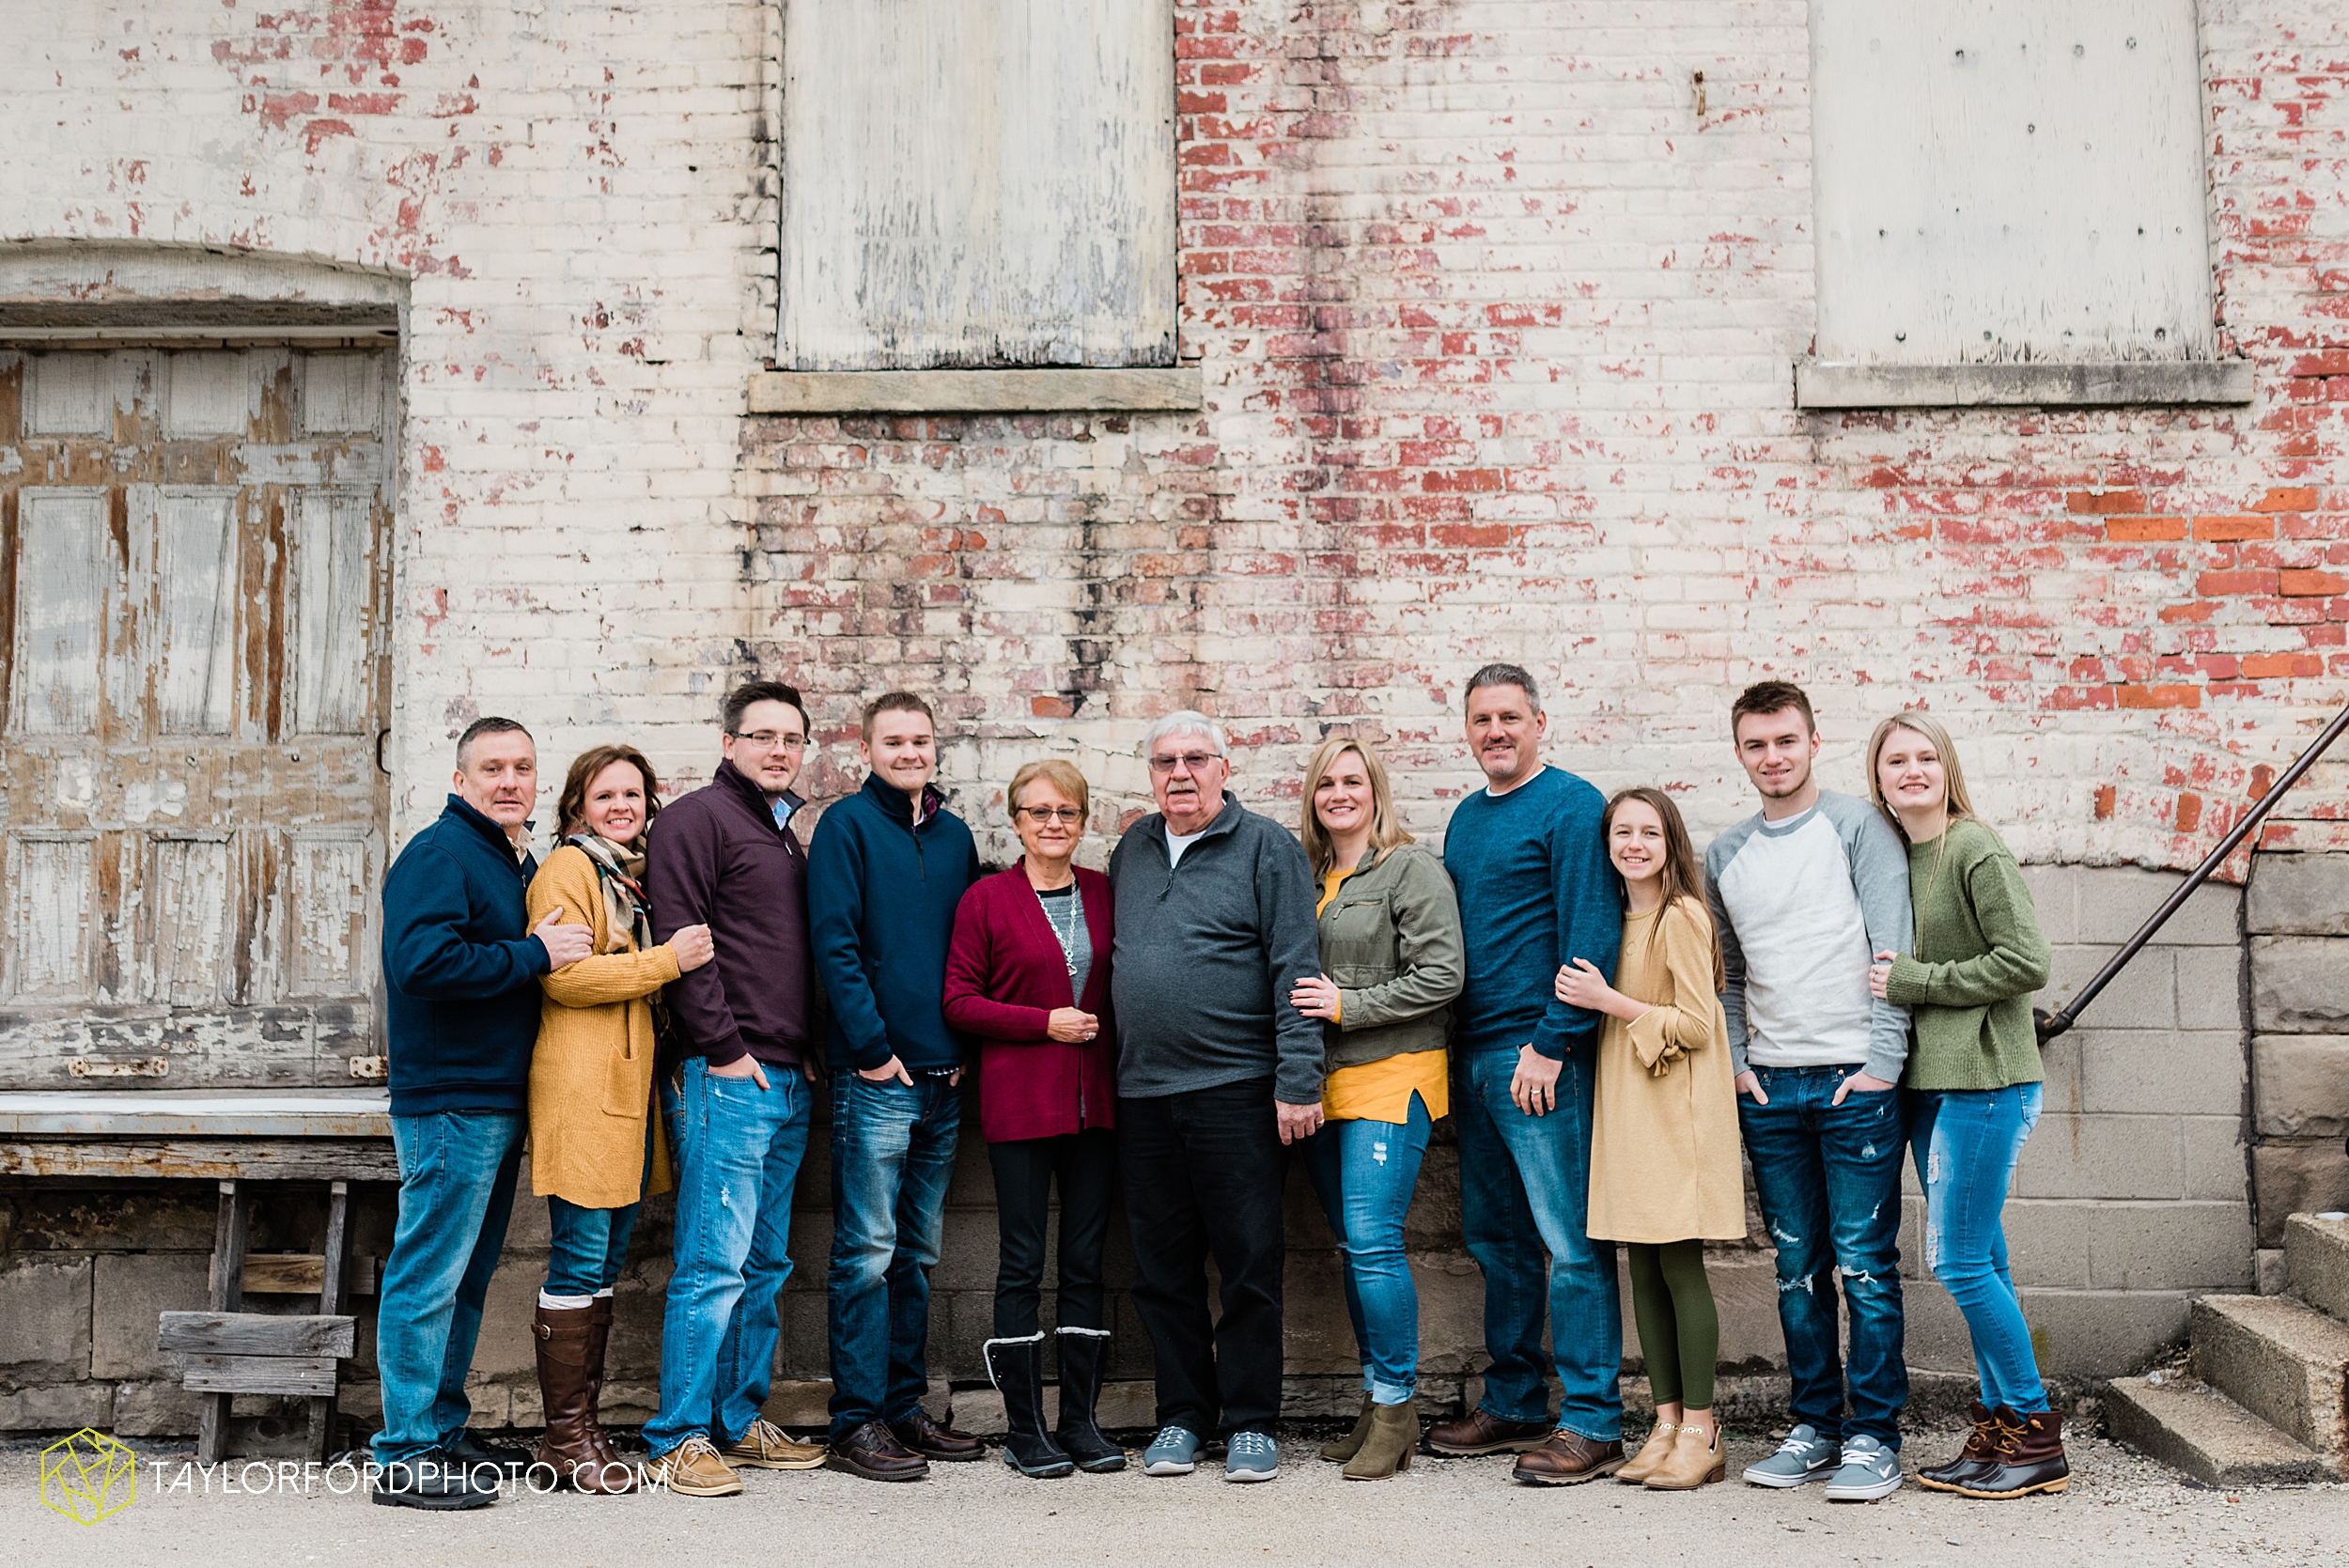 thompson-extended-family-van-wert-ohio-downtown-family-photography-taylor-ford-hirschy-photographer_2087.jpg